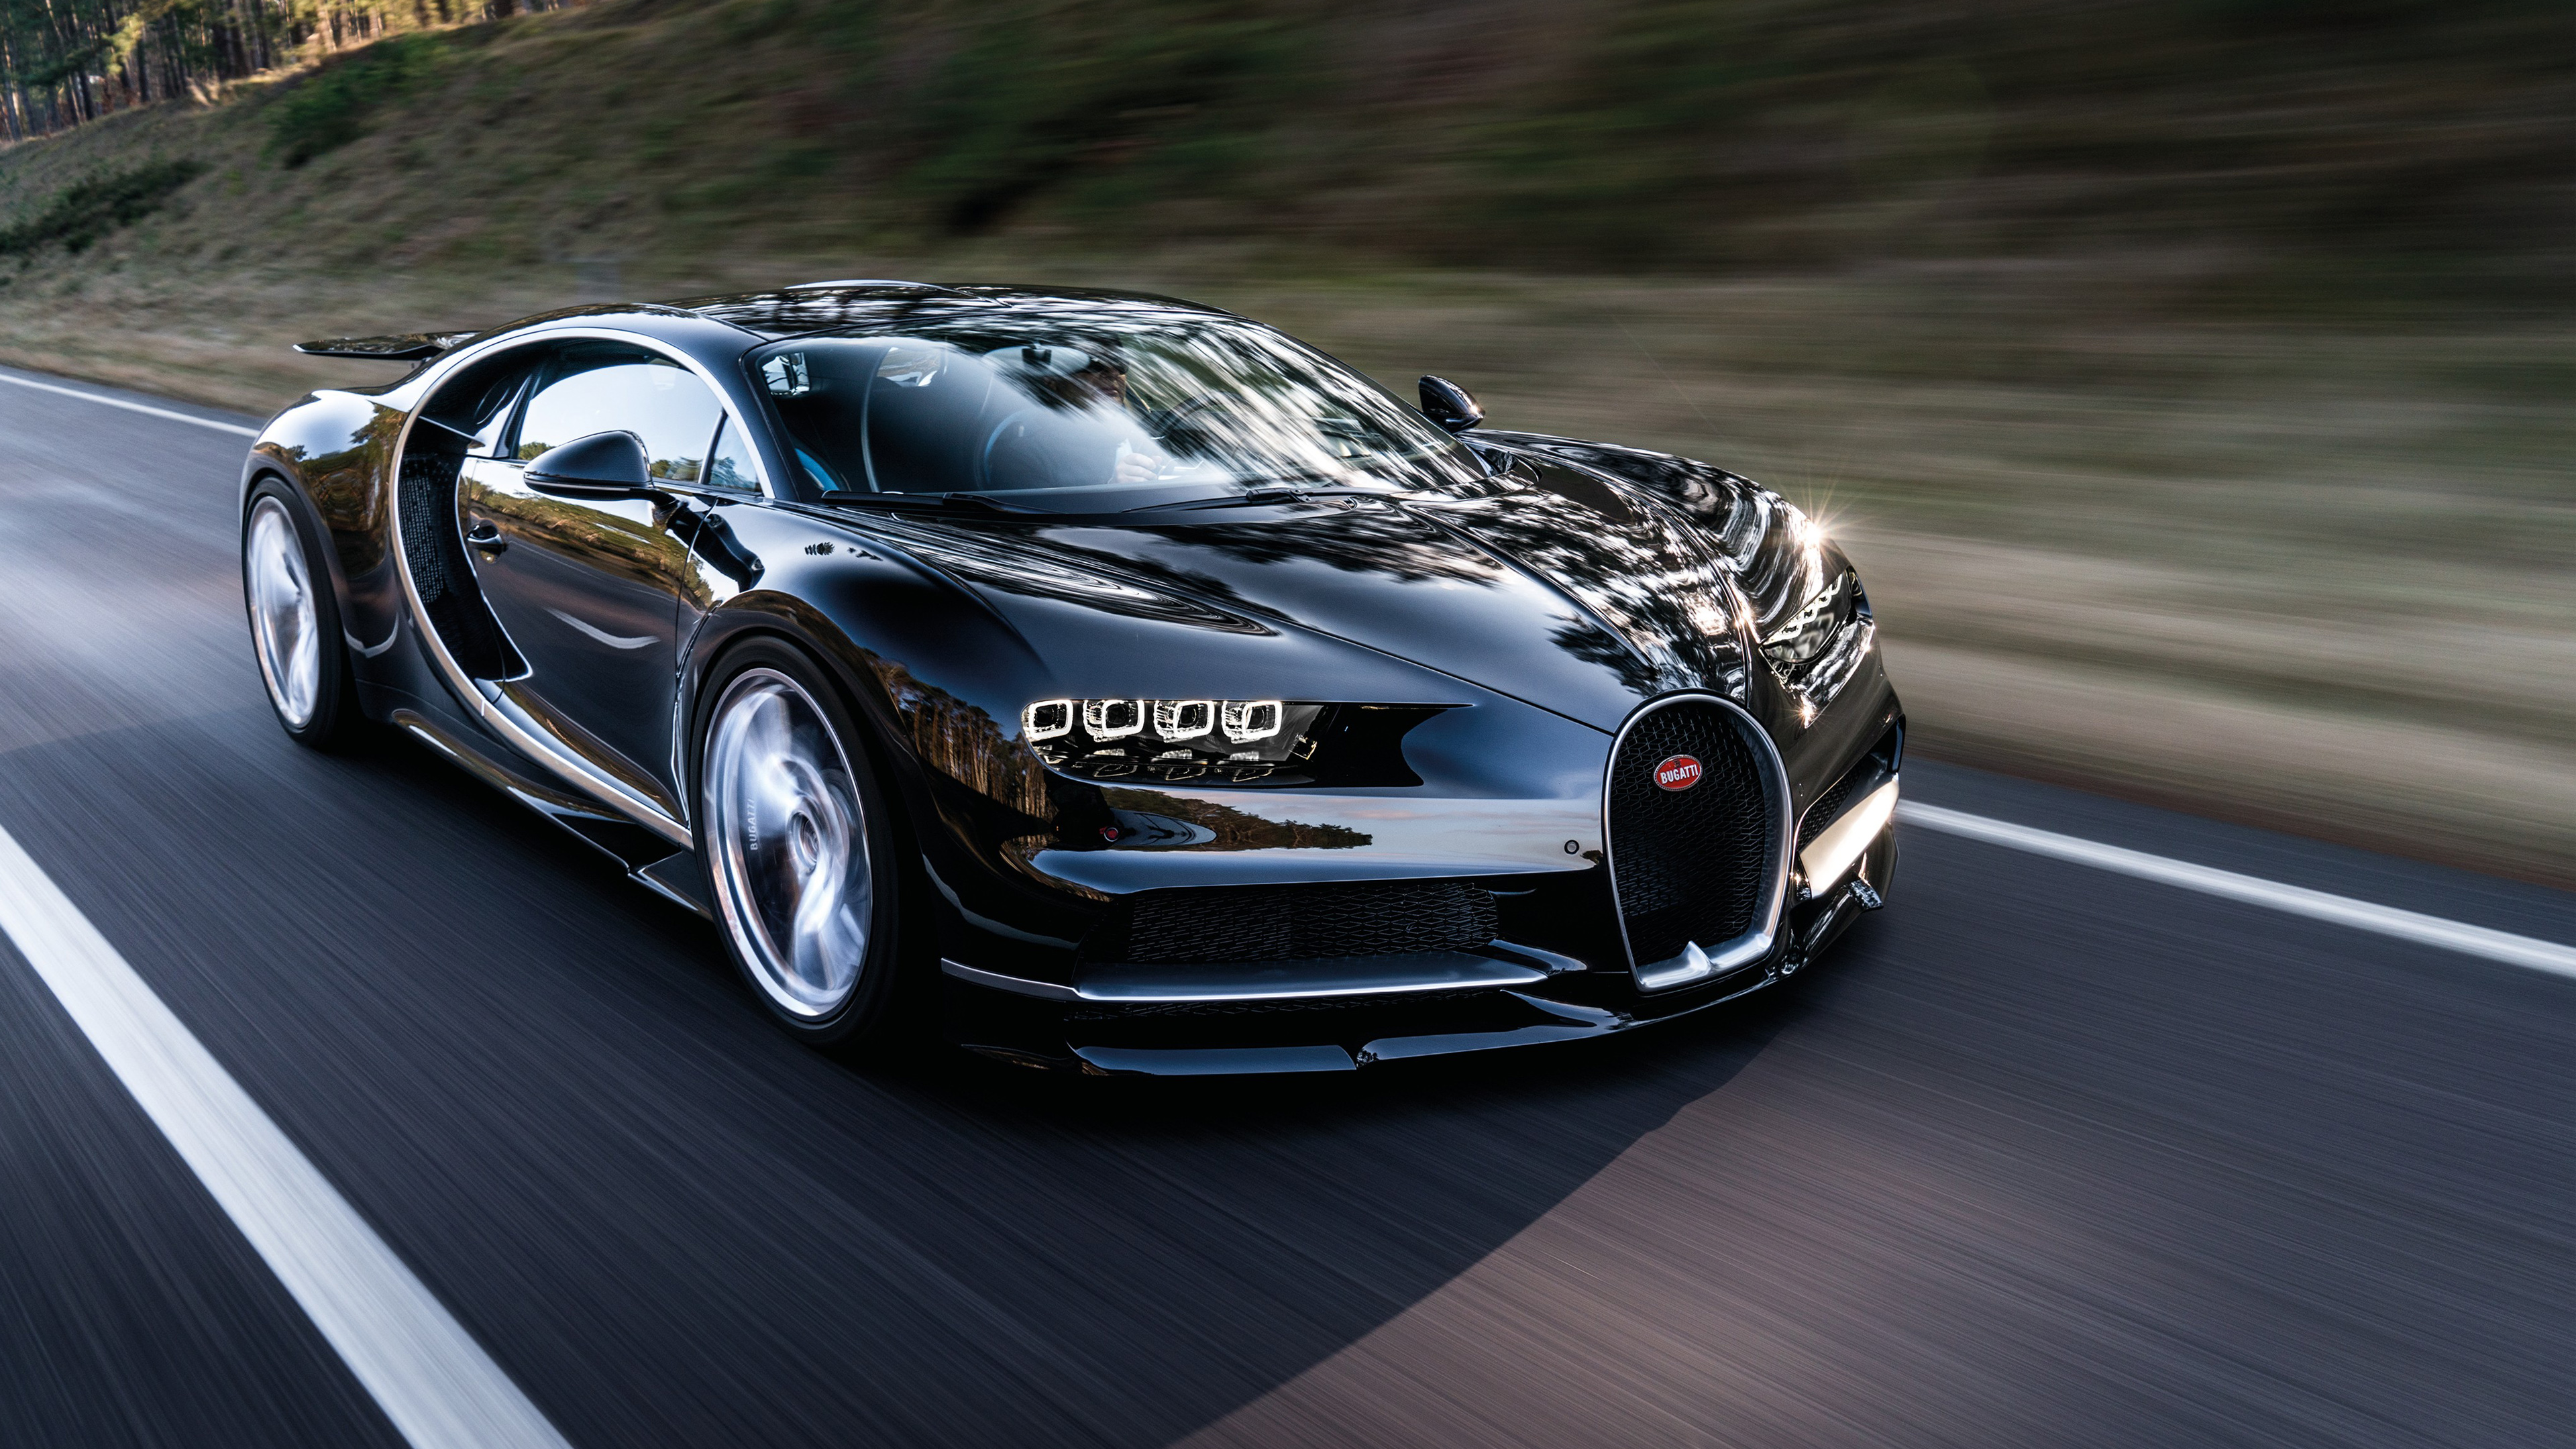 2017 bugatti chiron geneva auto expo wallpaper | hd car wallpapers